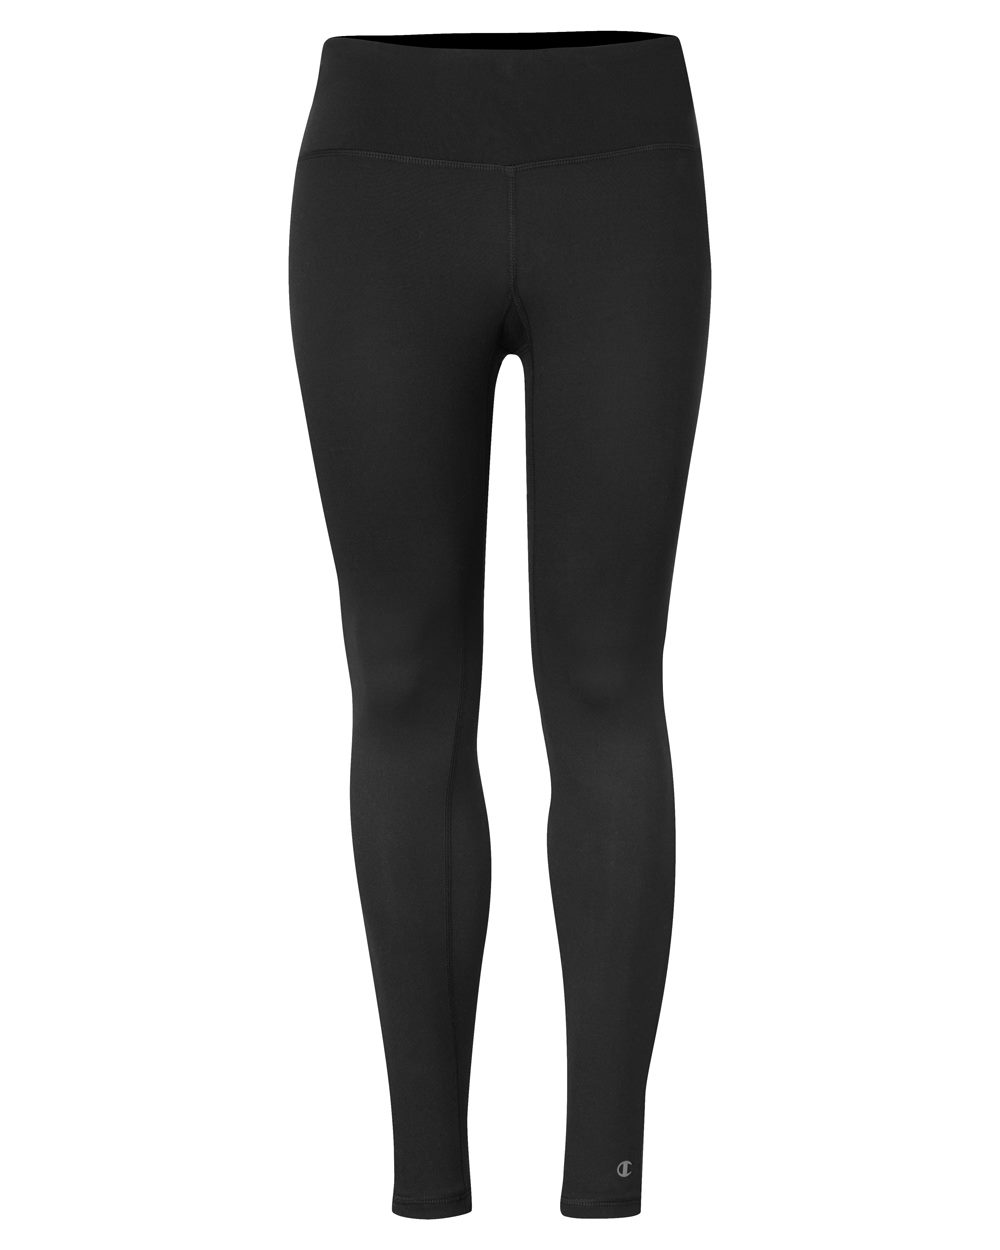 Champion B940 - Women's Performance Leggings